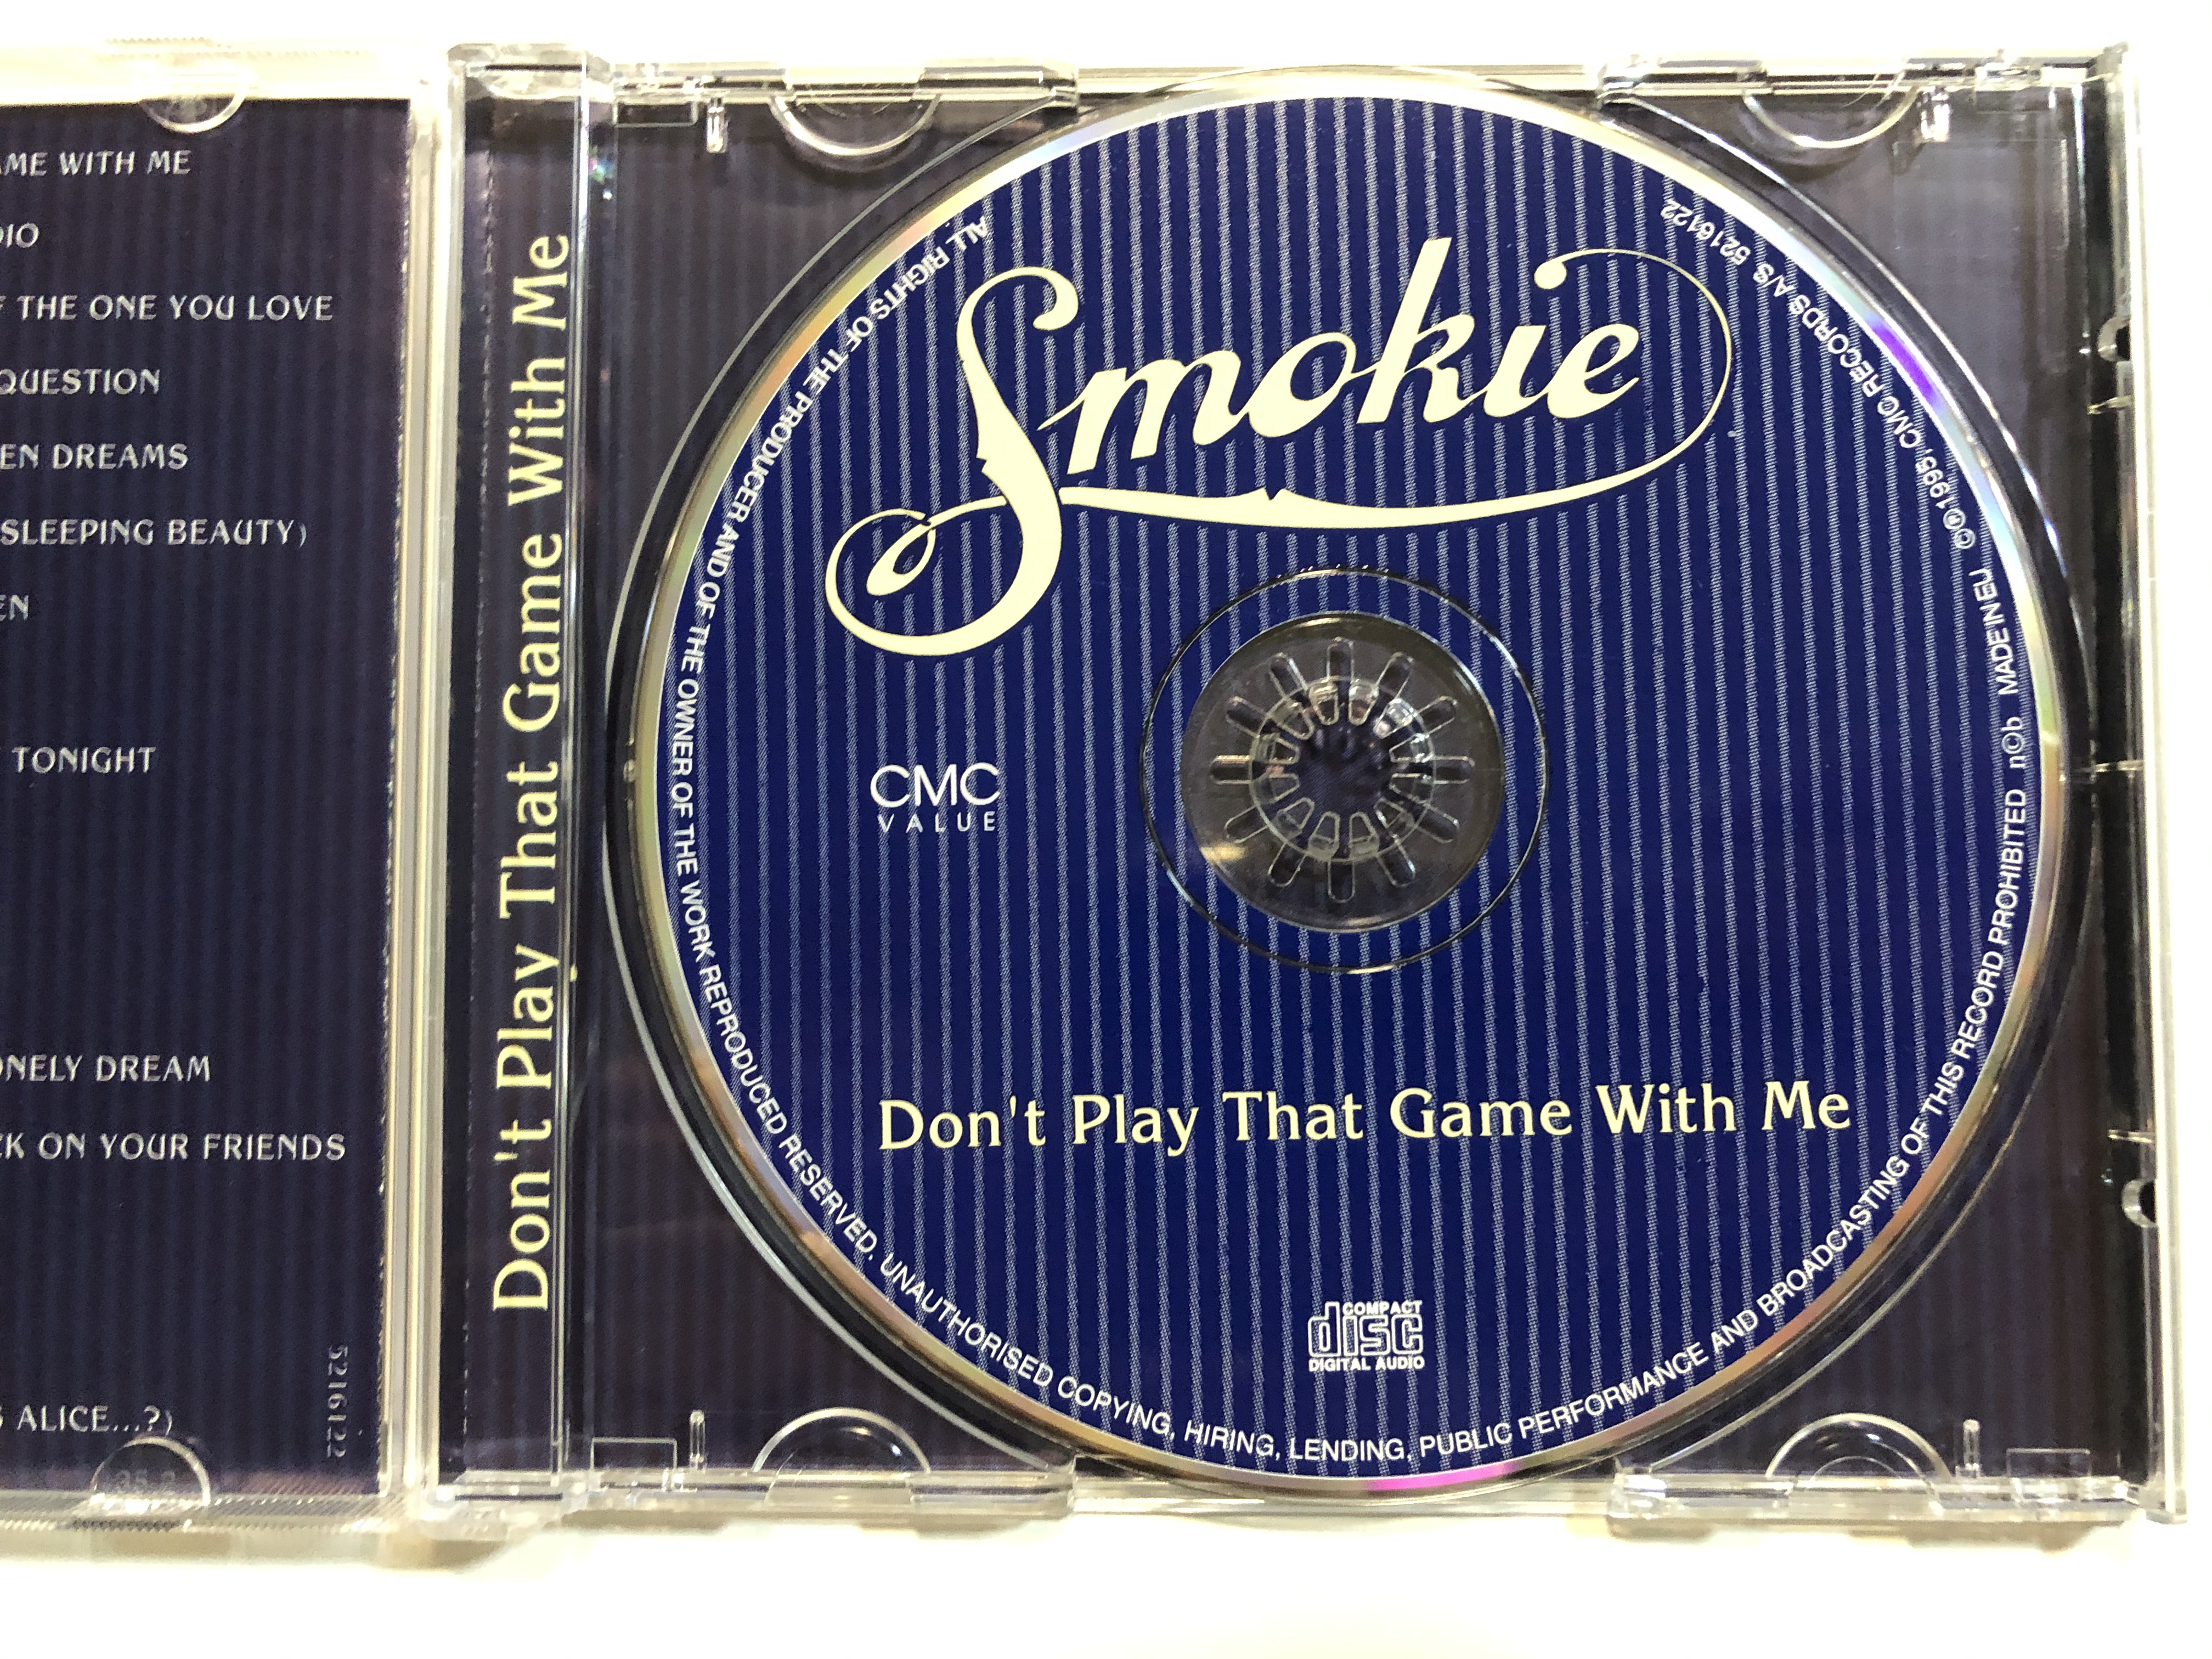 smokie-don-t-play-that-game-with-me-cmc-value-audio-cd-1995-5216122-3-.jpg